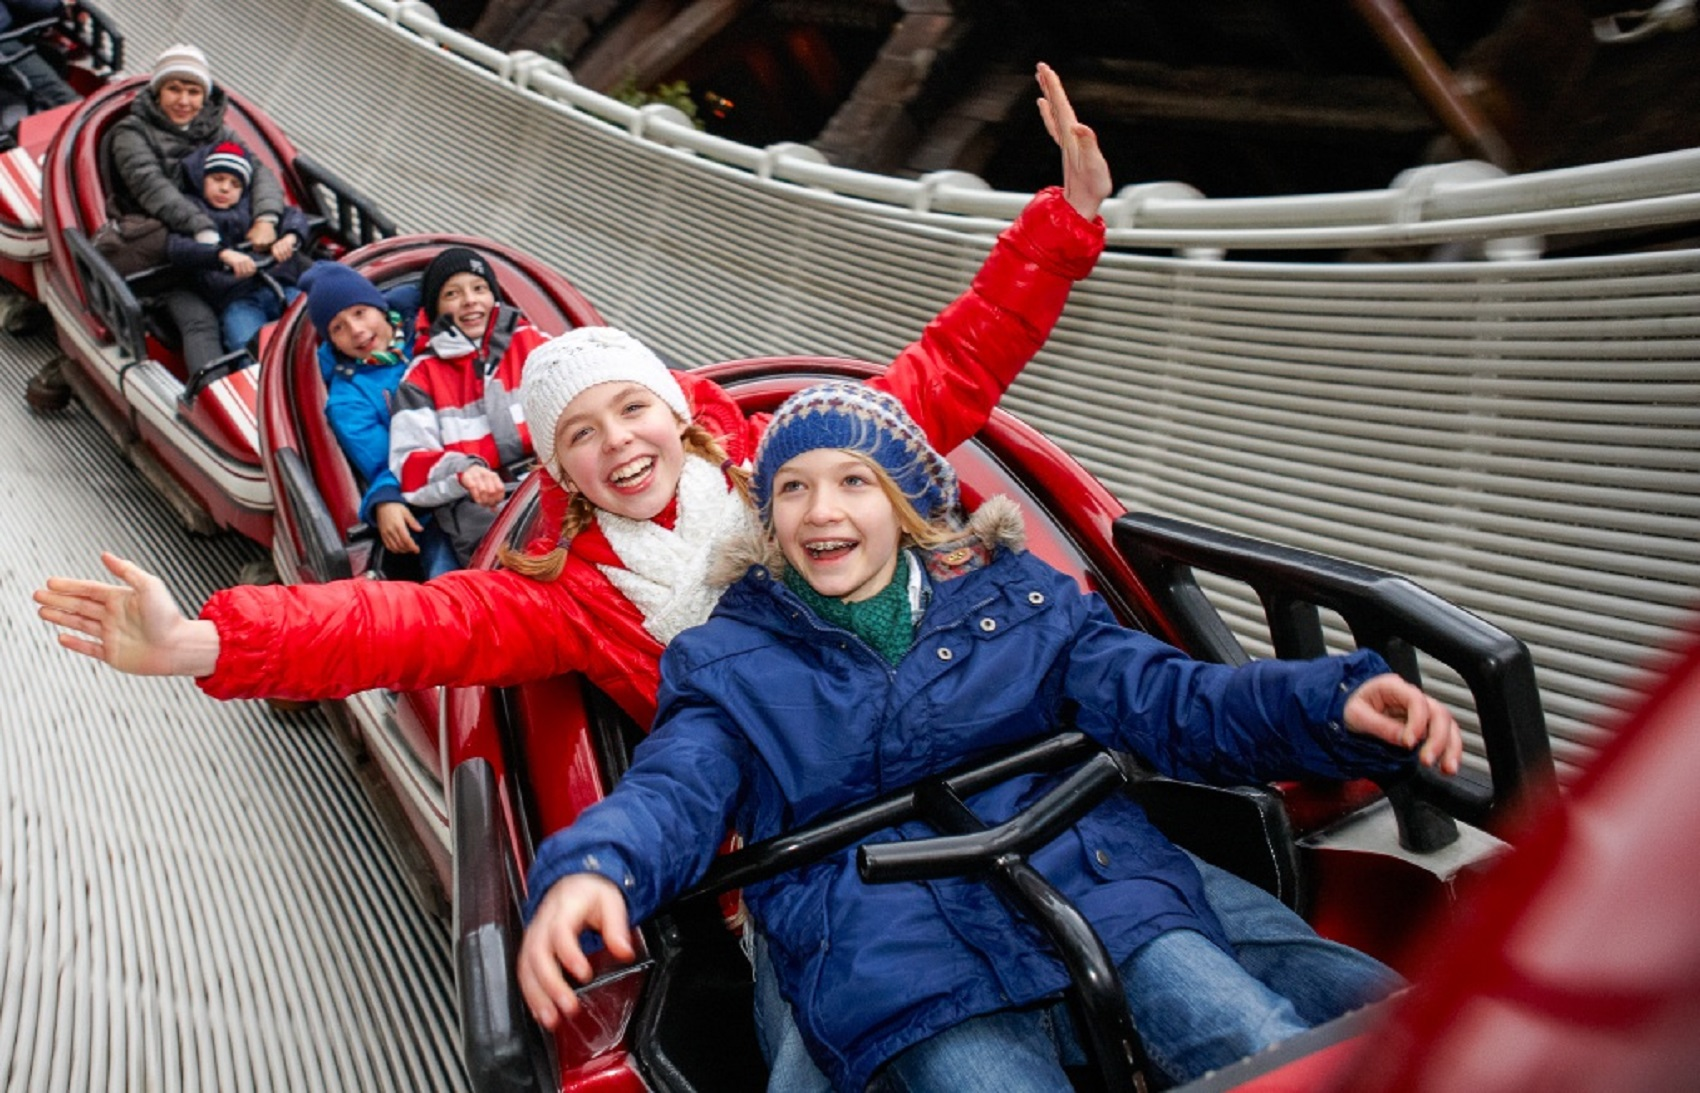 europa-park-the-guidebook-ride